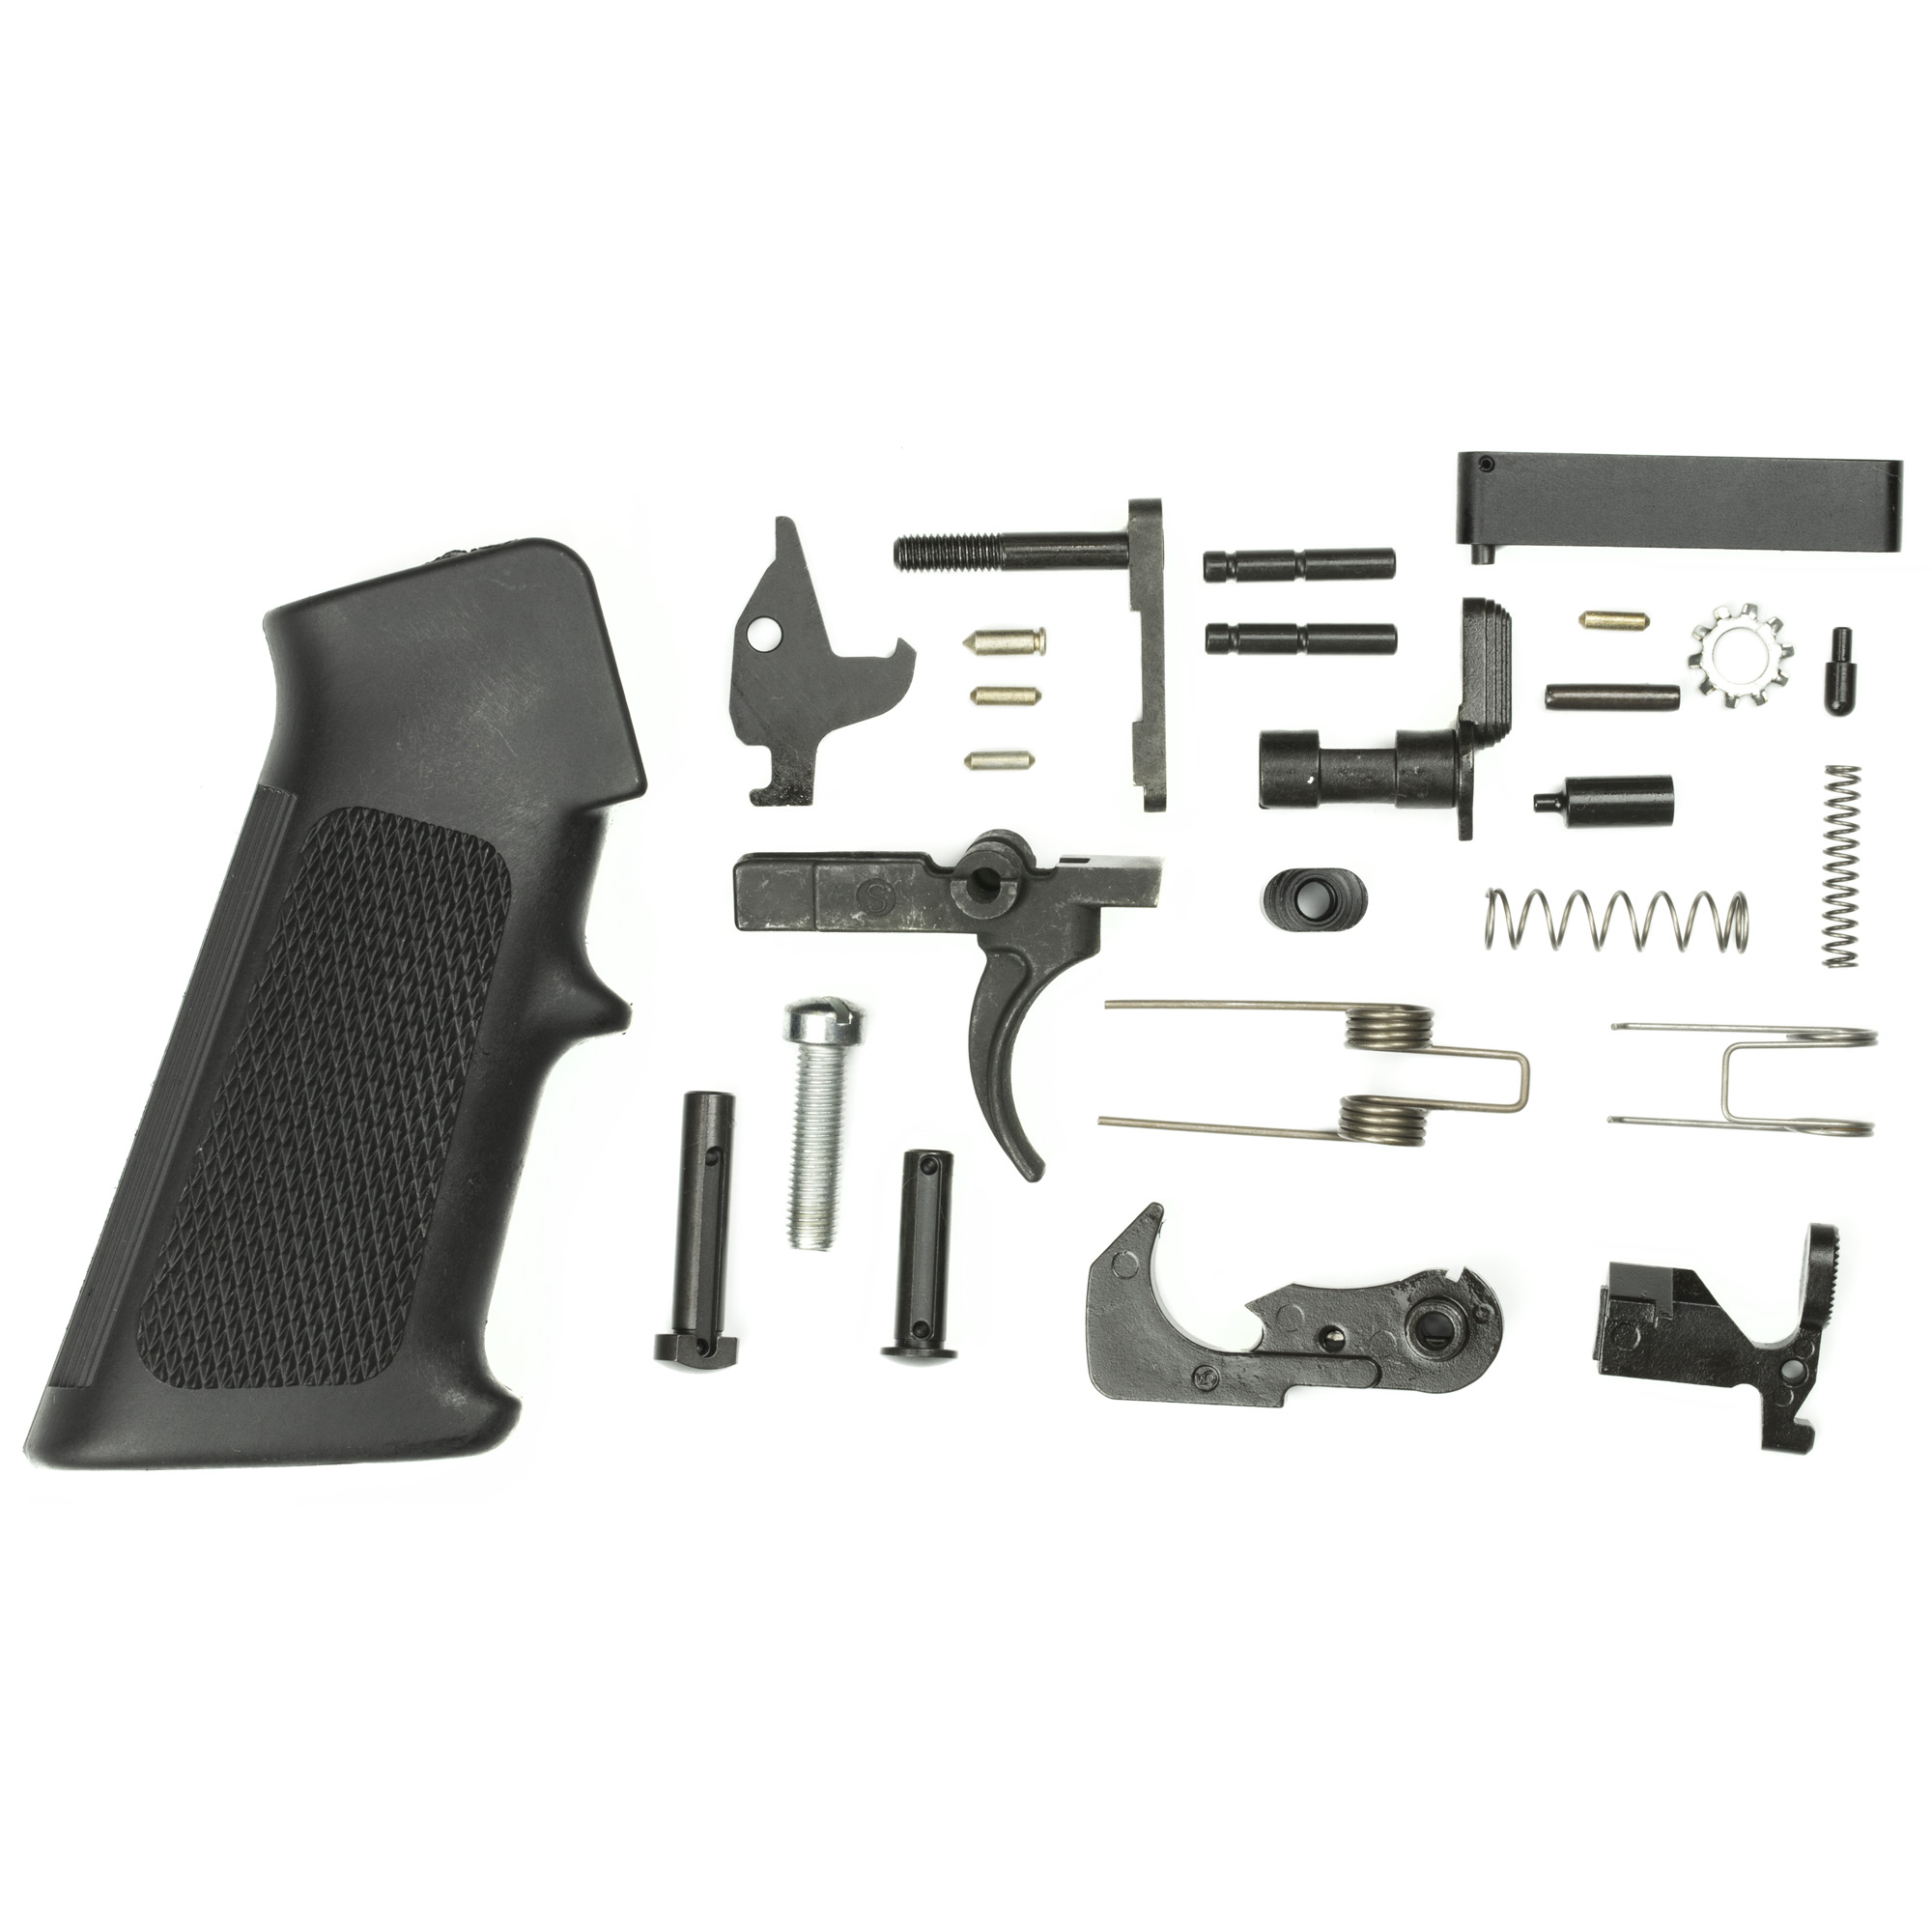 "Double Star uses only the best parts to make their lower parts kits. The fire control group is made from mil spec heat treated 8620 steel and finished on all touch points for a smooth"" crisp trigger pull with minimal creep or drag. This AR15 lower parts kit uses high quality American made parts to ensure performance in your AR15."